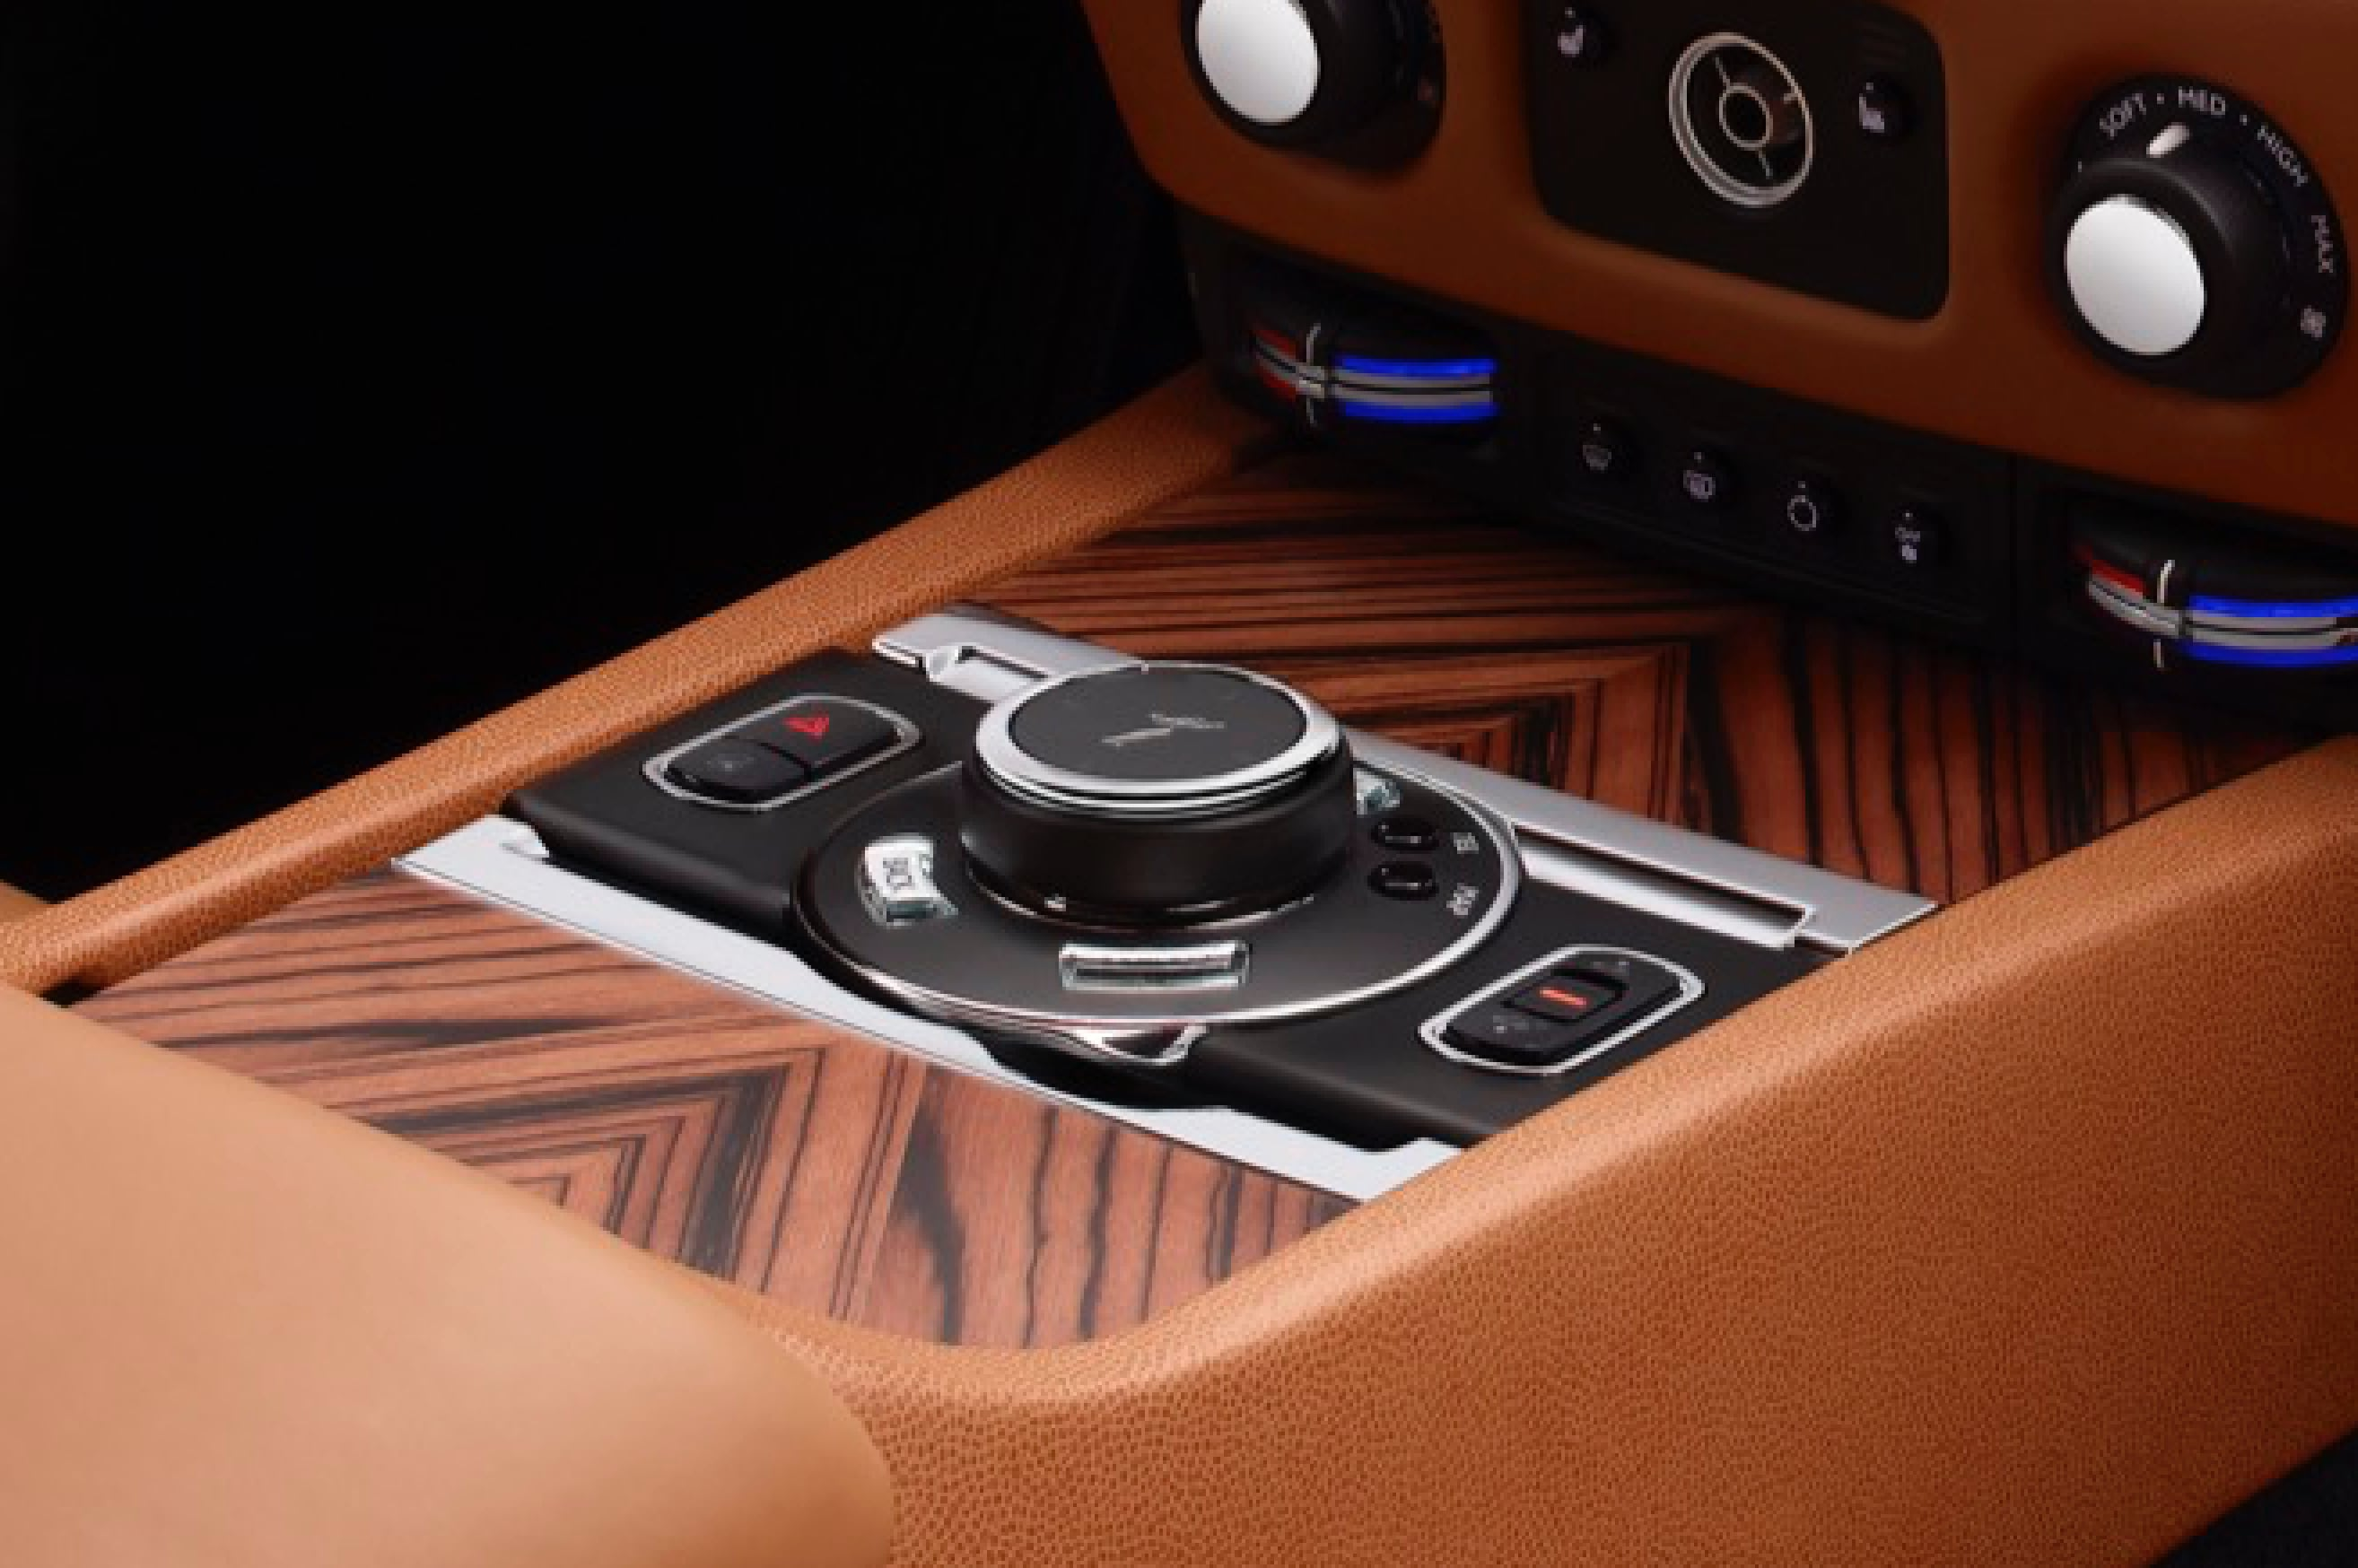 rolls-royce wraith dashboard with canadel panelling